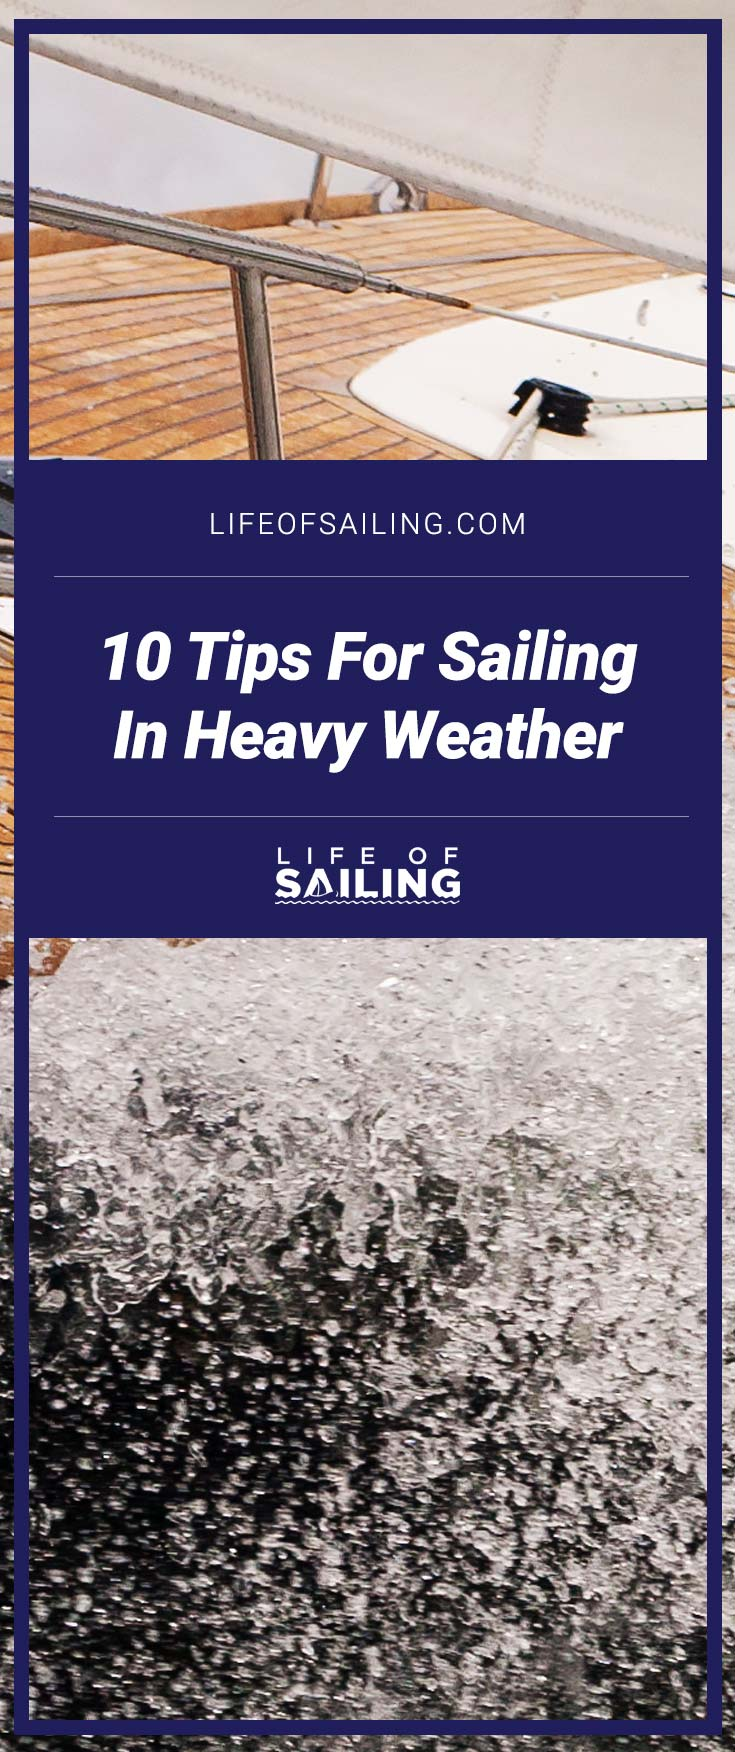 10 Tips for Sailing In Heavy Weather